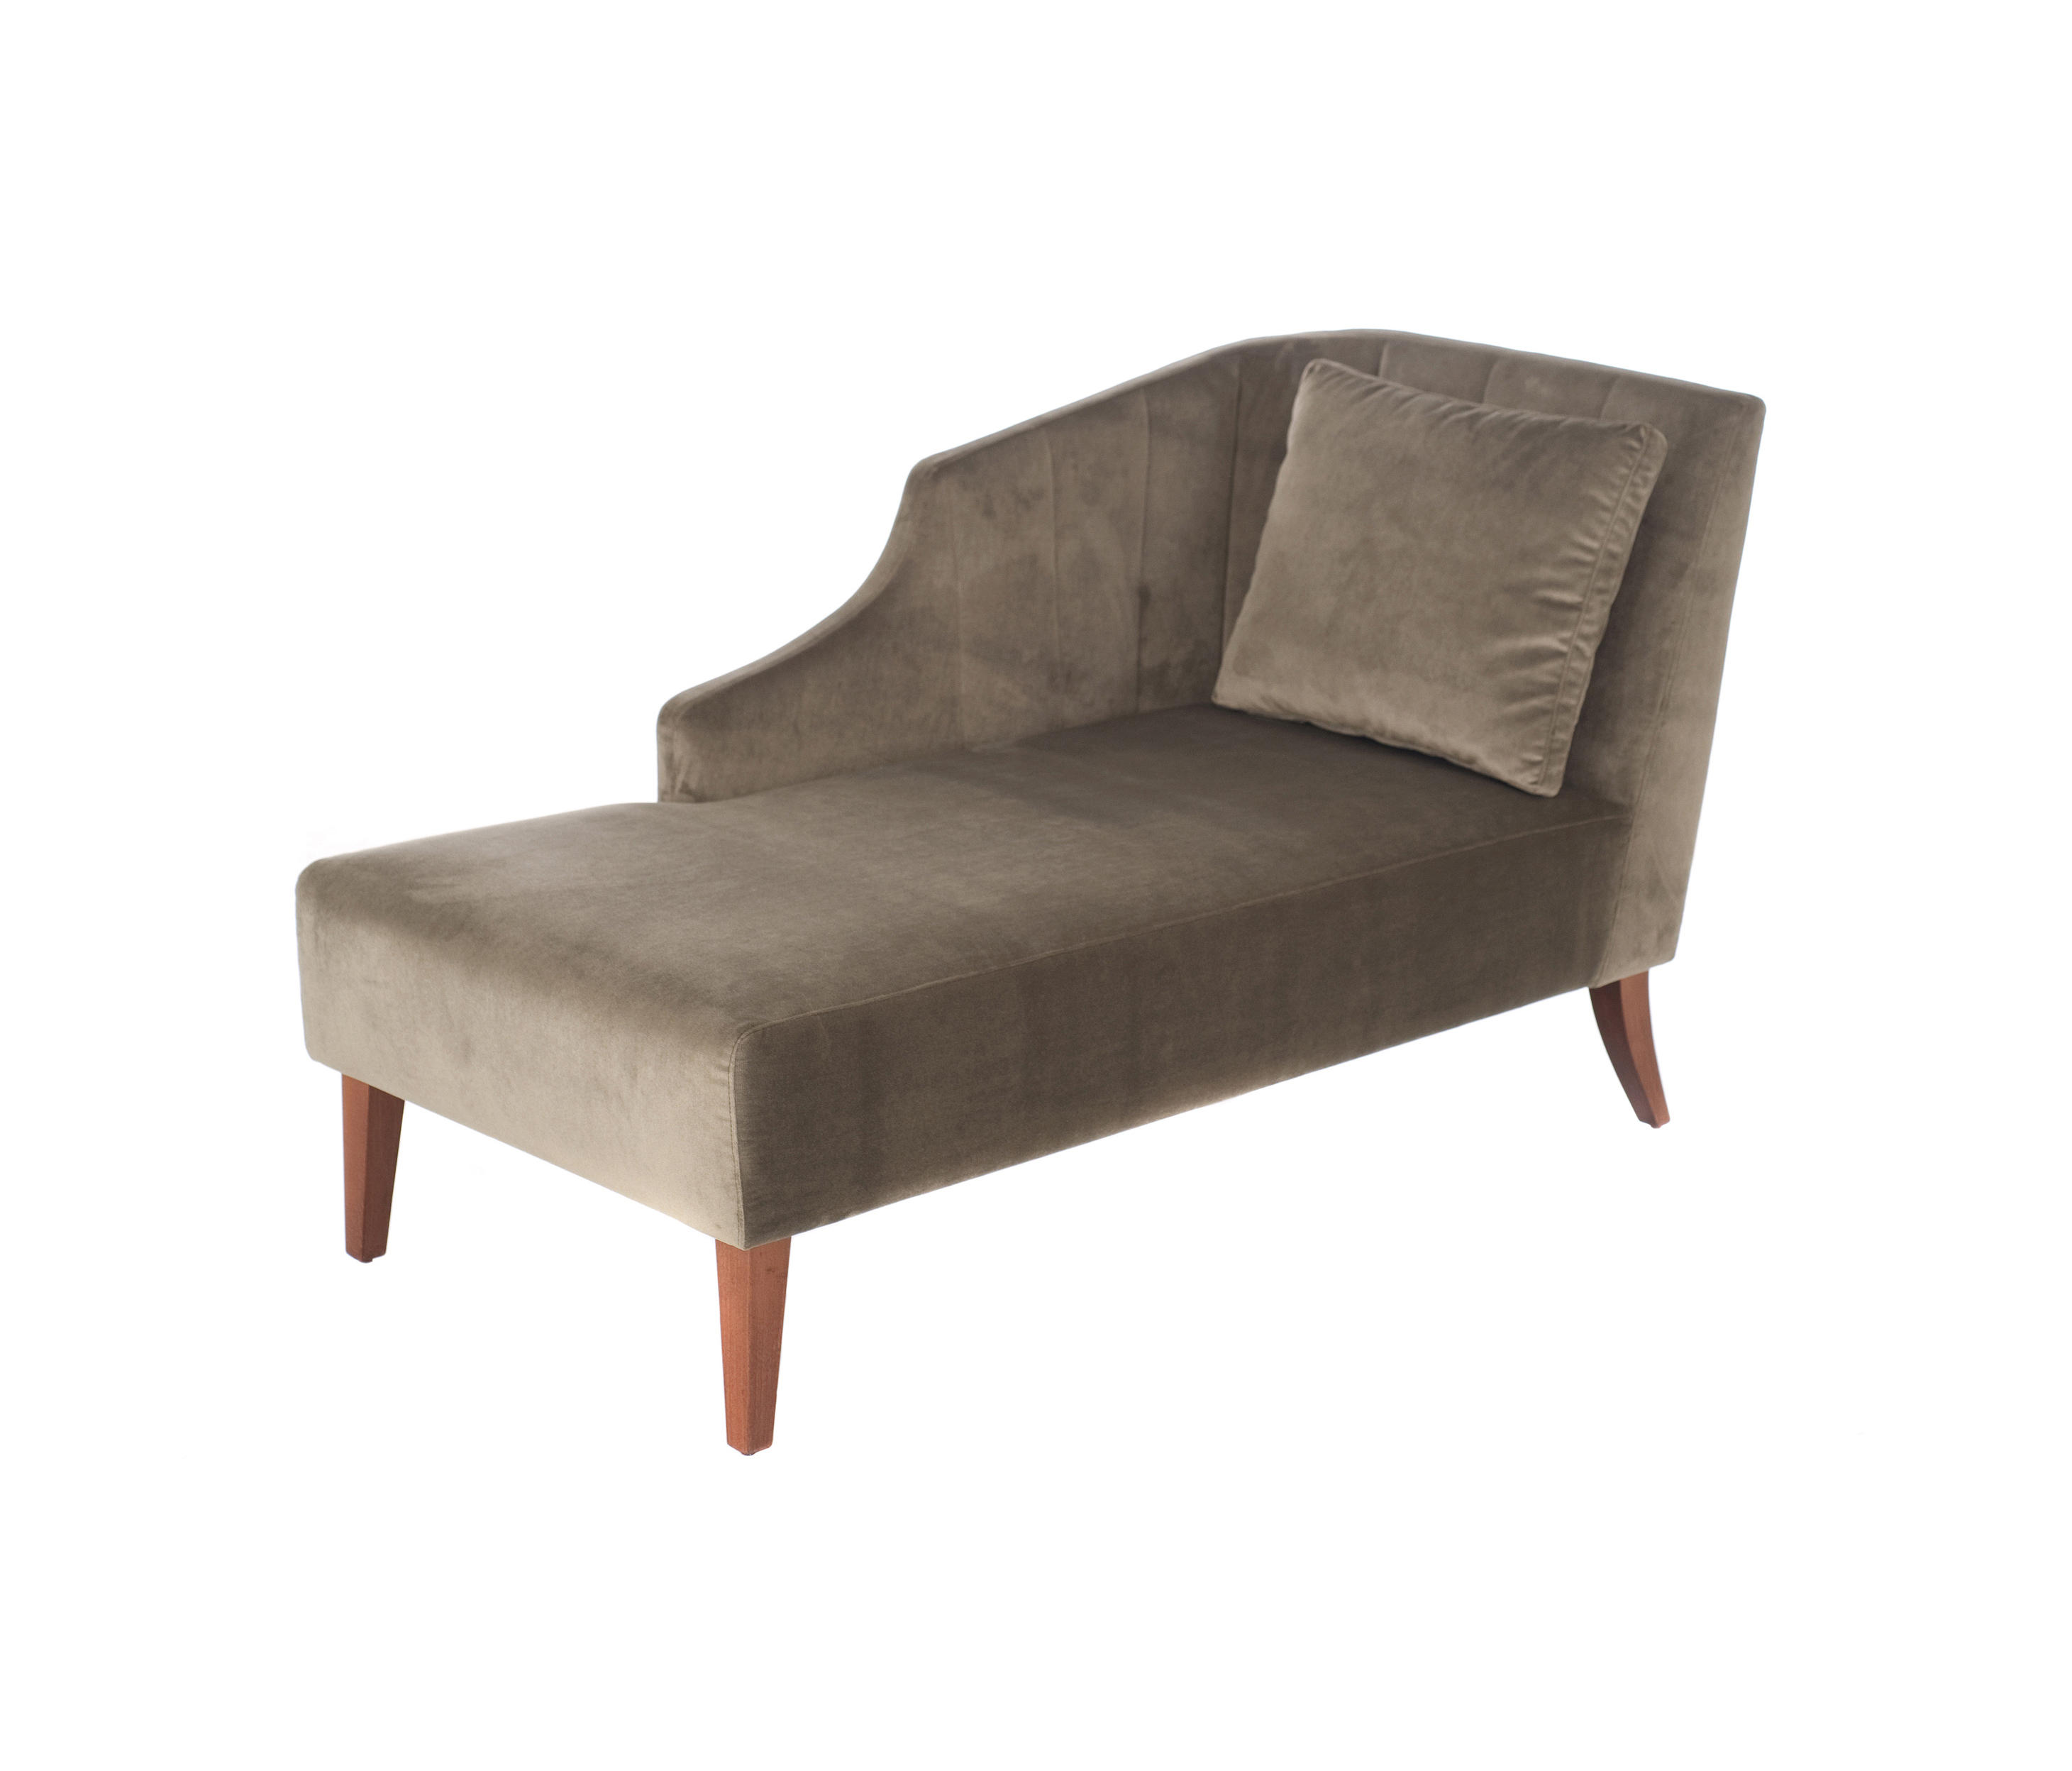 Aspen chaise longue recamieres from paulo antunes - Chaise longue chilienne ...